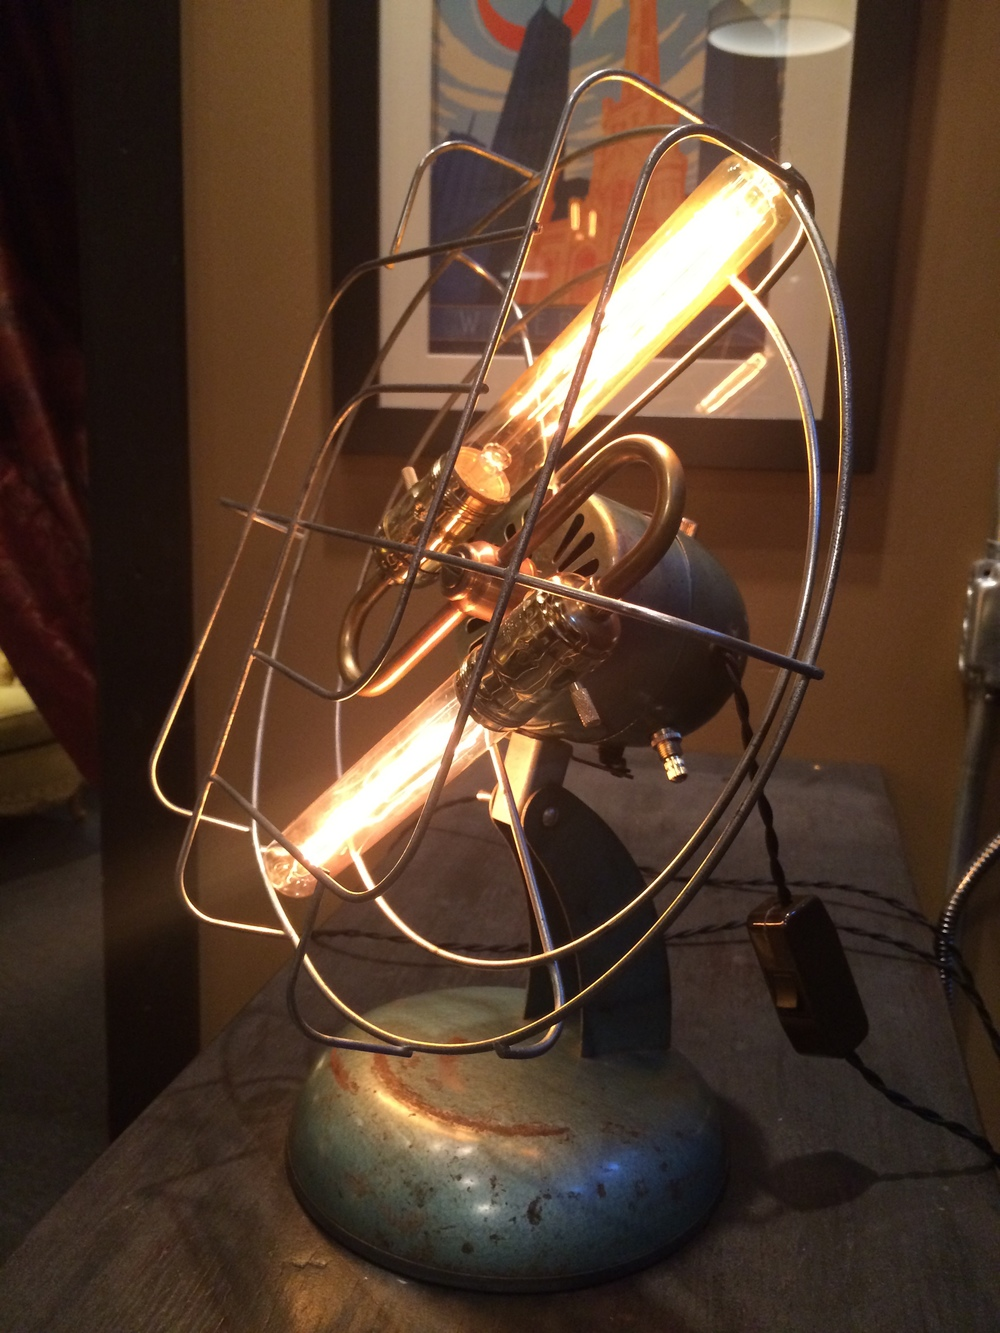 1950's Vintage Super Lectric Fan Lamp - $165